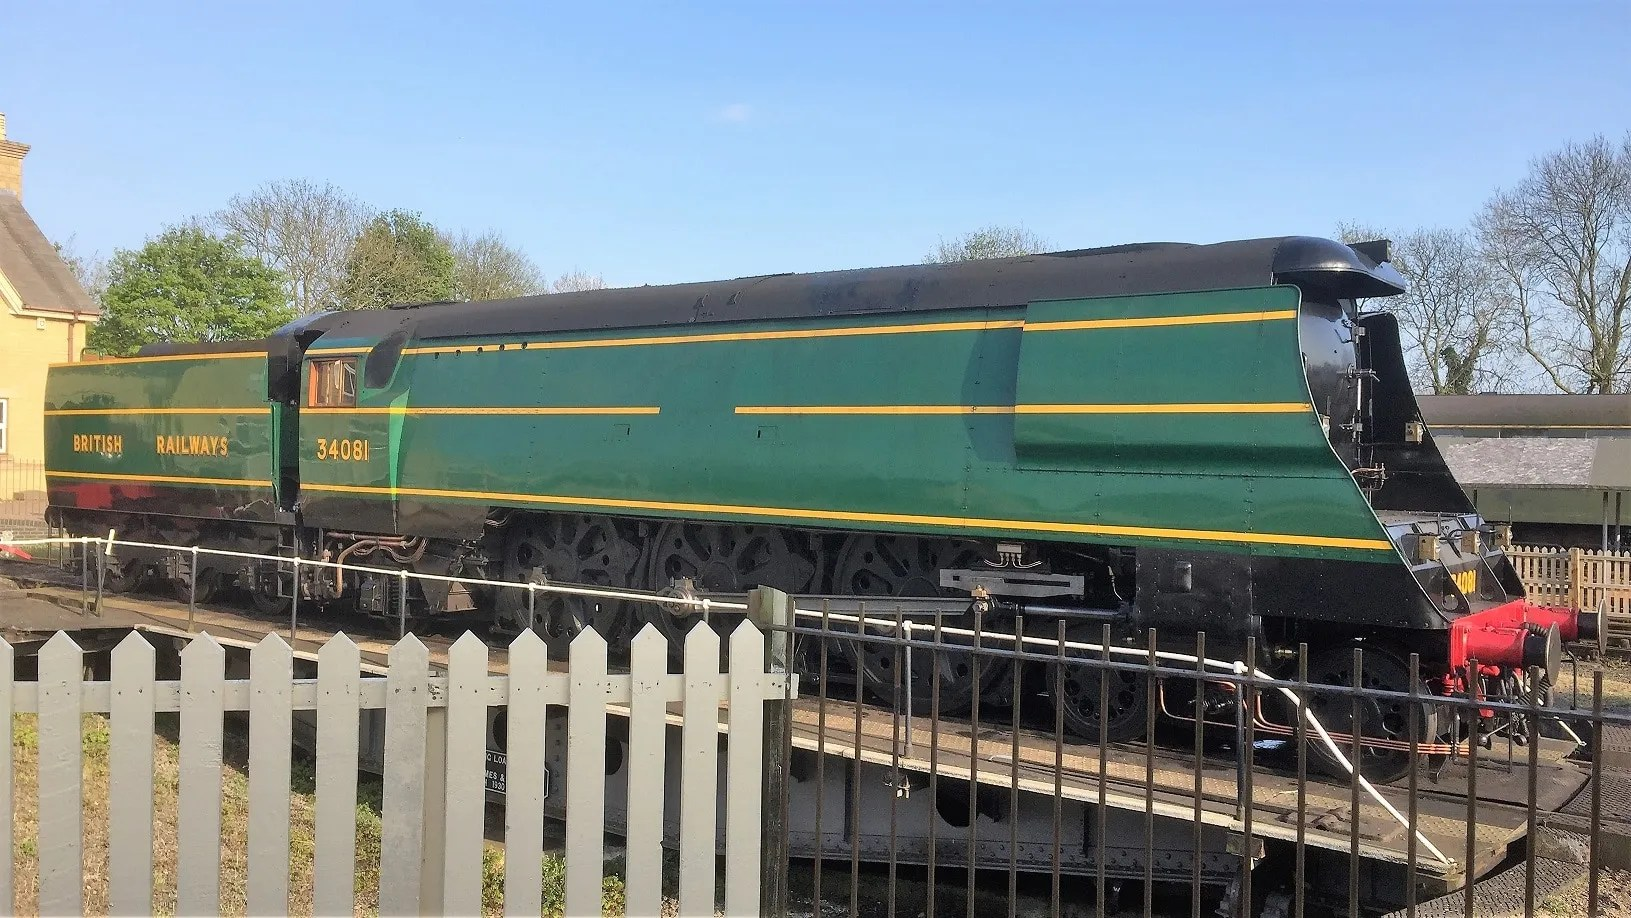 Steam train trip on locomotive 34081 - 92 Squadron - battle of britain locomotive - Wansford - Nene Valley Railway